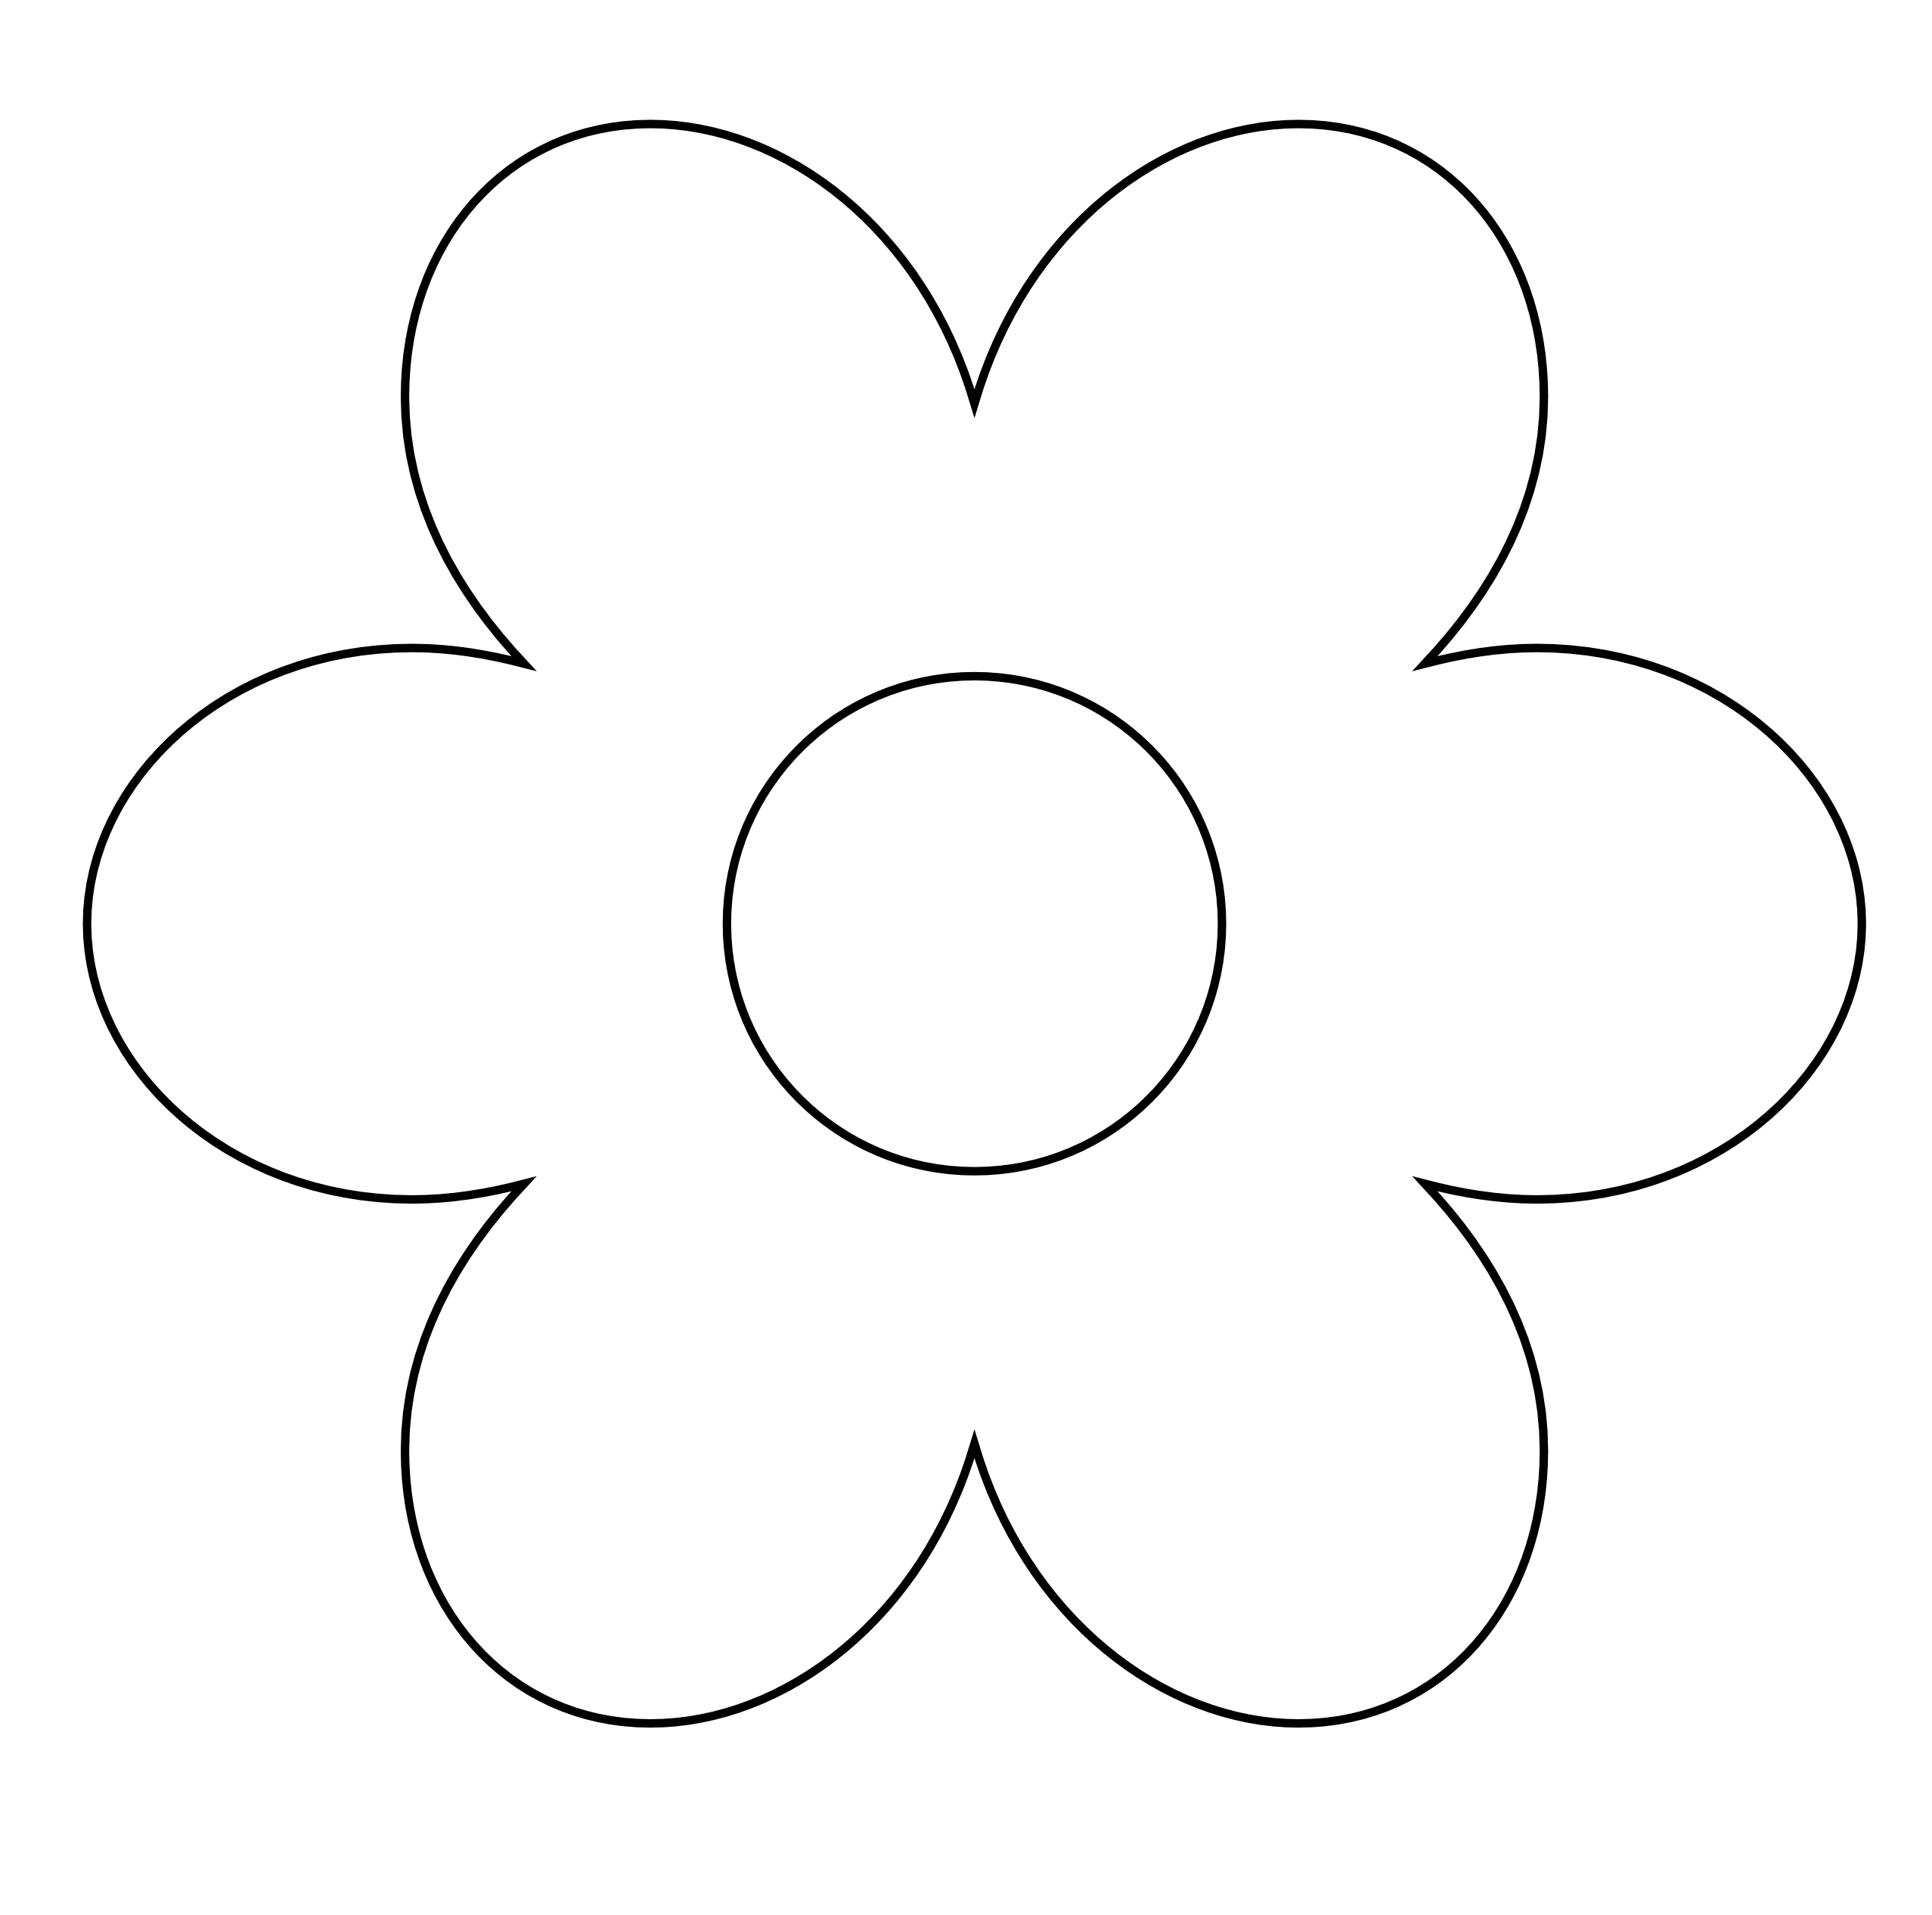 Flower petal clipart black and white graphic freeuse library White flower clipart png - ClipartFest graphic freeuse library